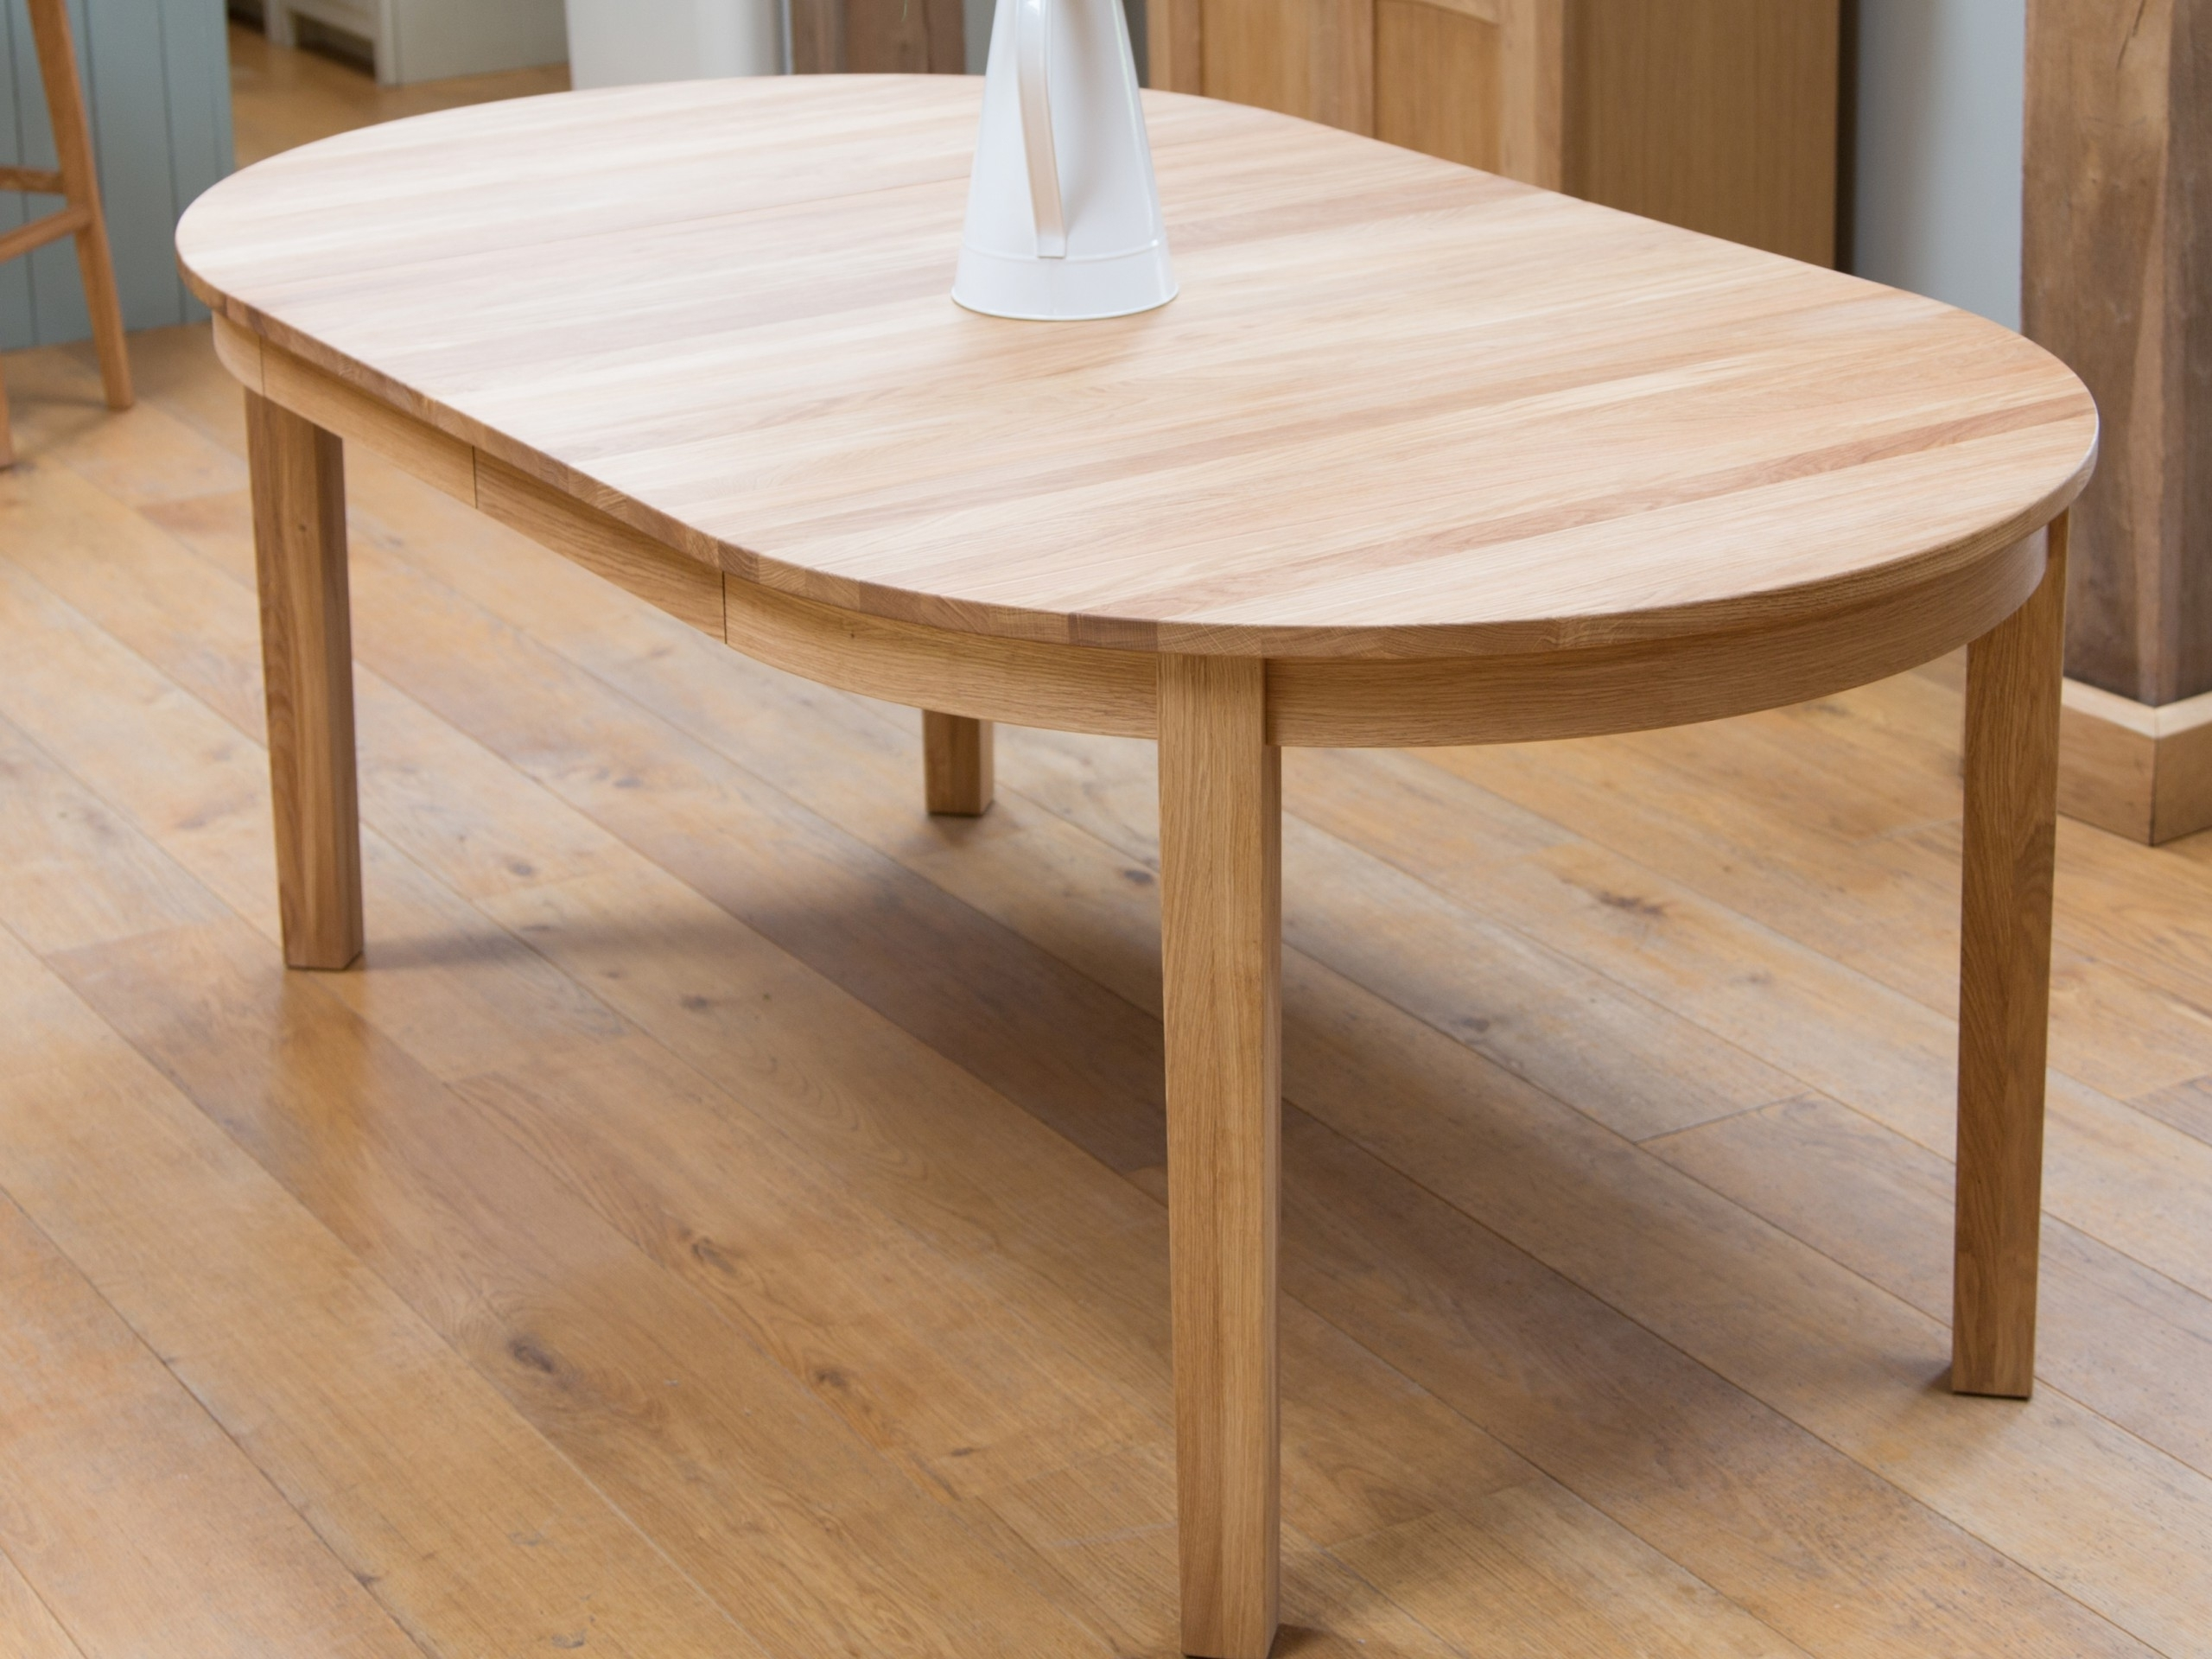 Best And Newest Round Extending Dining Tables And Chairs Intended For Round Extendable Dining Table Design (View 4 of 25)